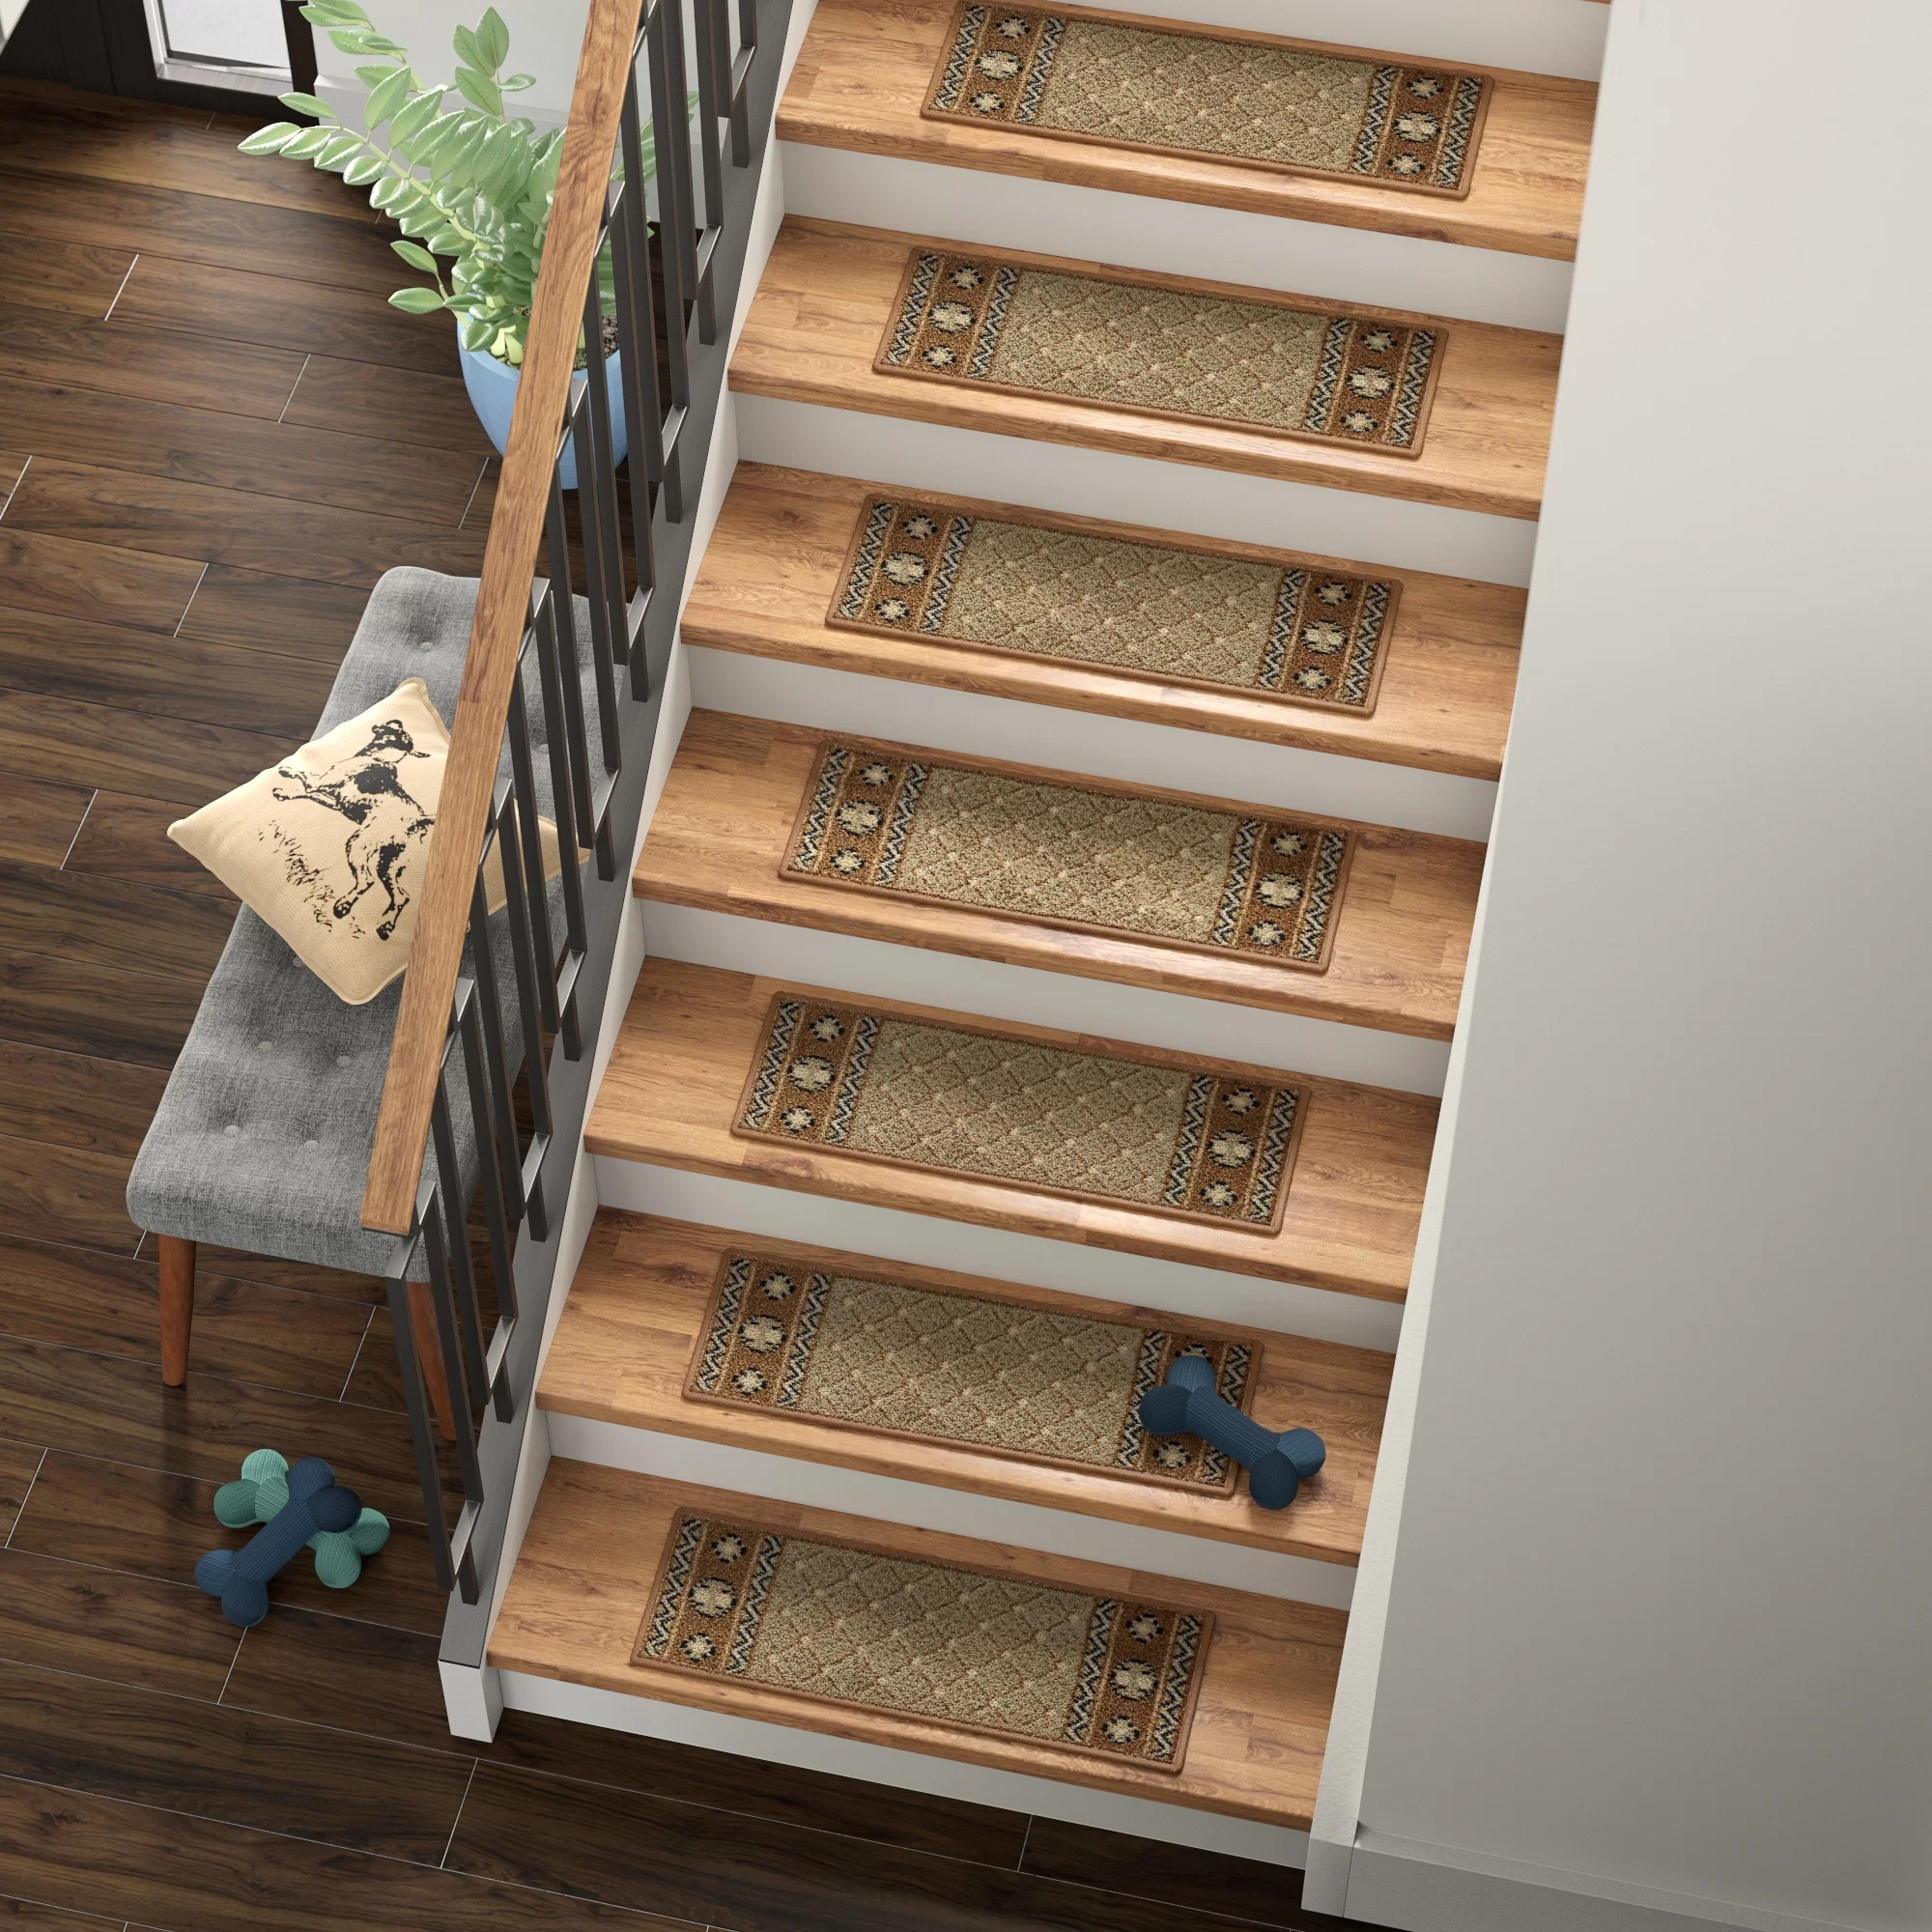 Tucker Murphy™ Pet Baynes Diamond Non Slip Rubber Backed Stair   Stair Treads With Rubber Backing   Ottomanson Softy   Removable Washable   Wood   Slip Resistant   Outdoor Stair